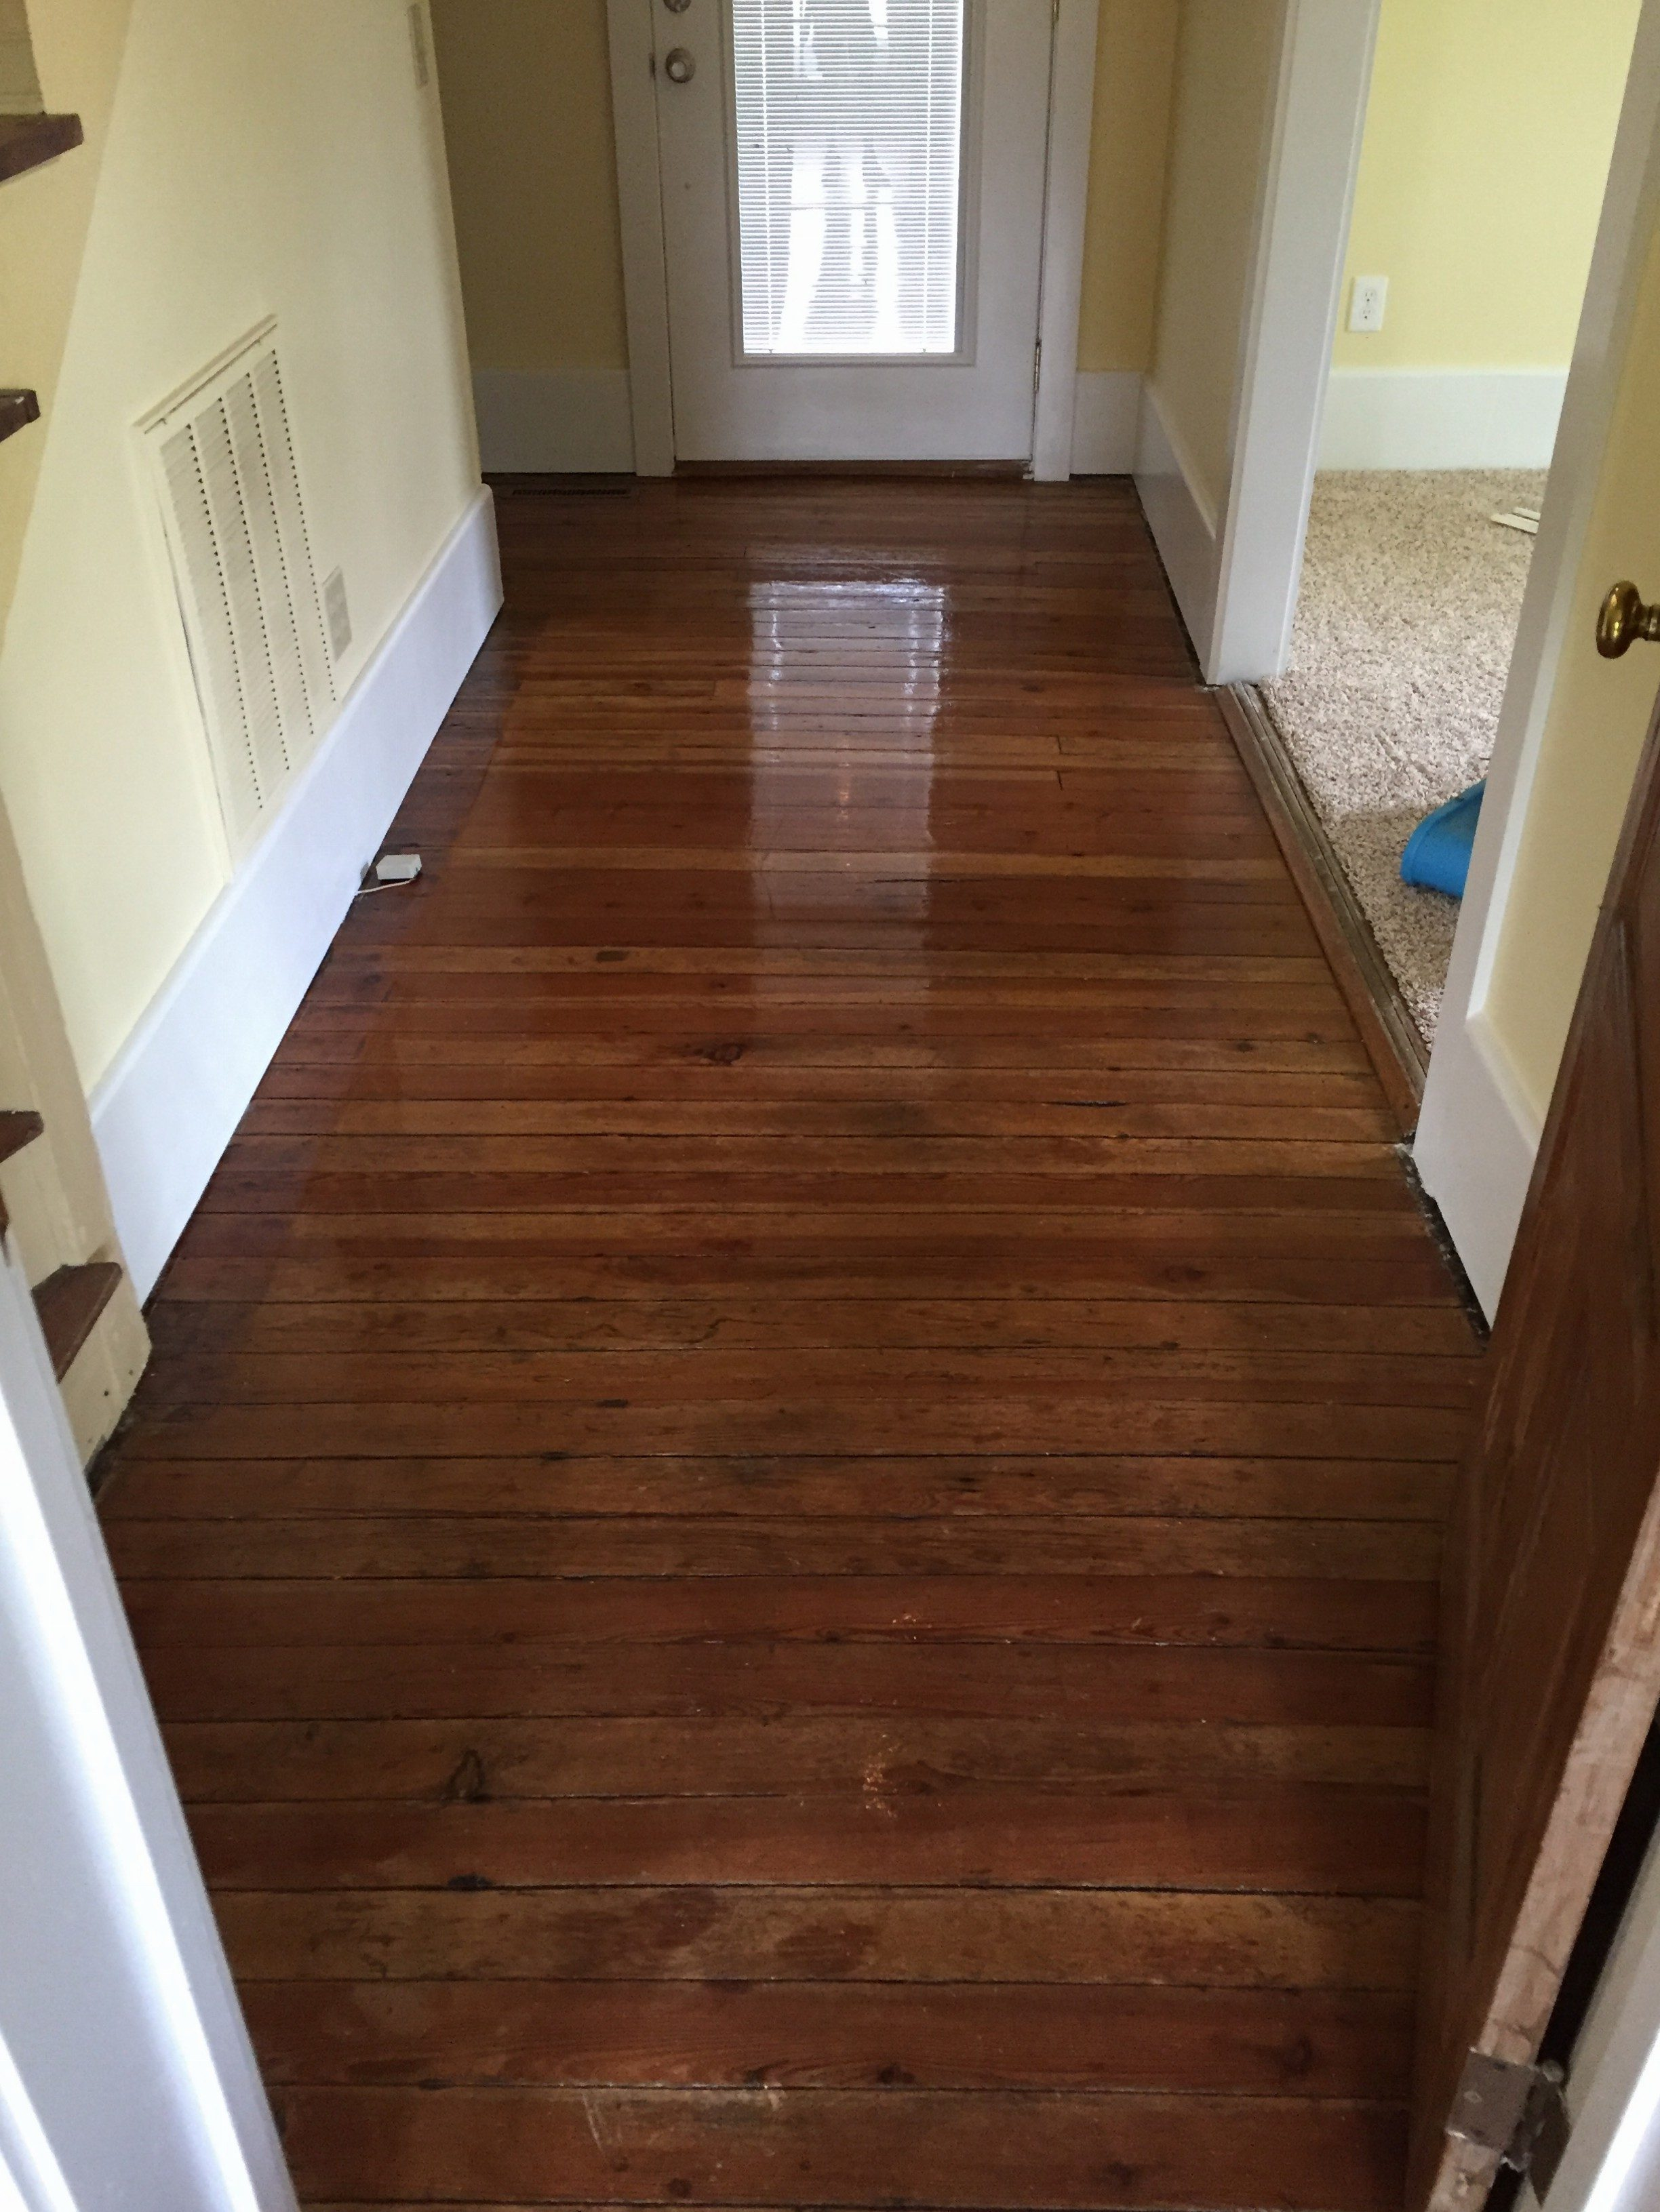 asheville hardwood floor cleaning before and after. Black Bedroom Furniture Sets. Home Design Ideas